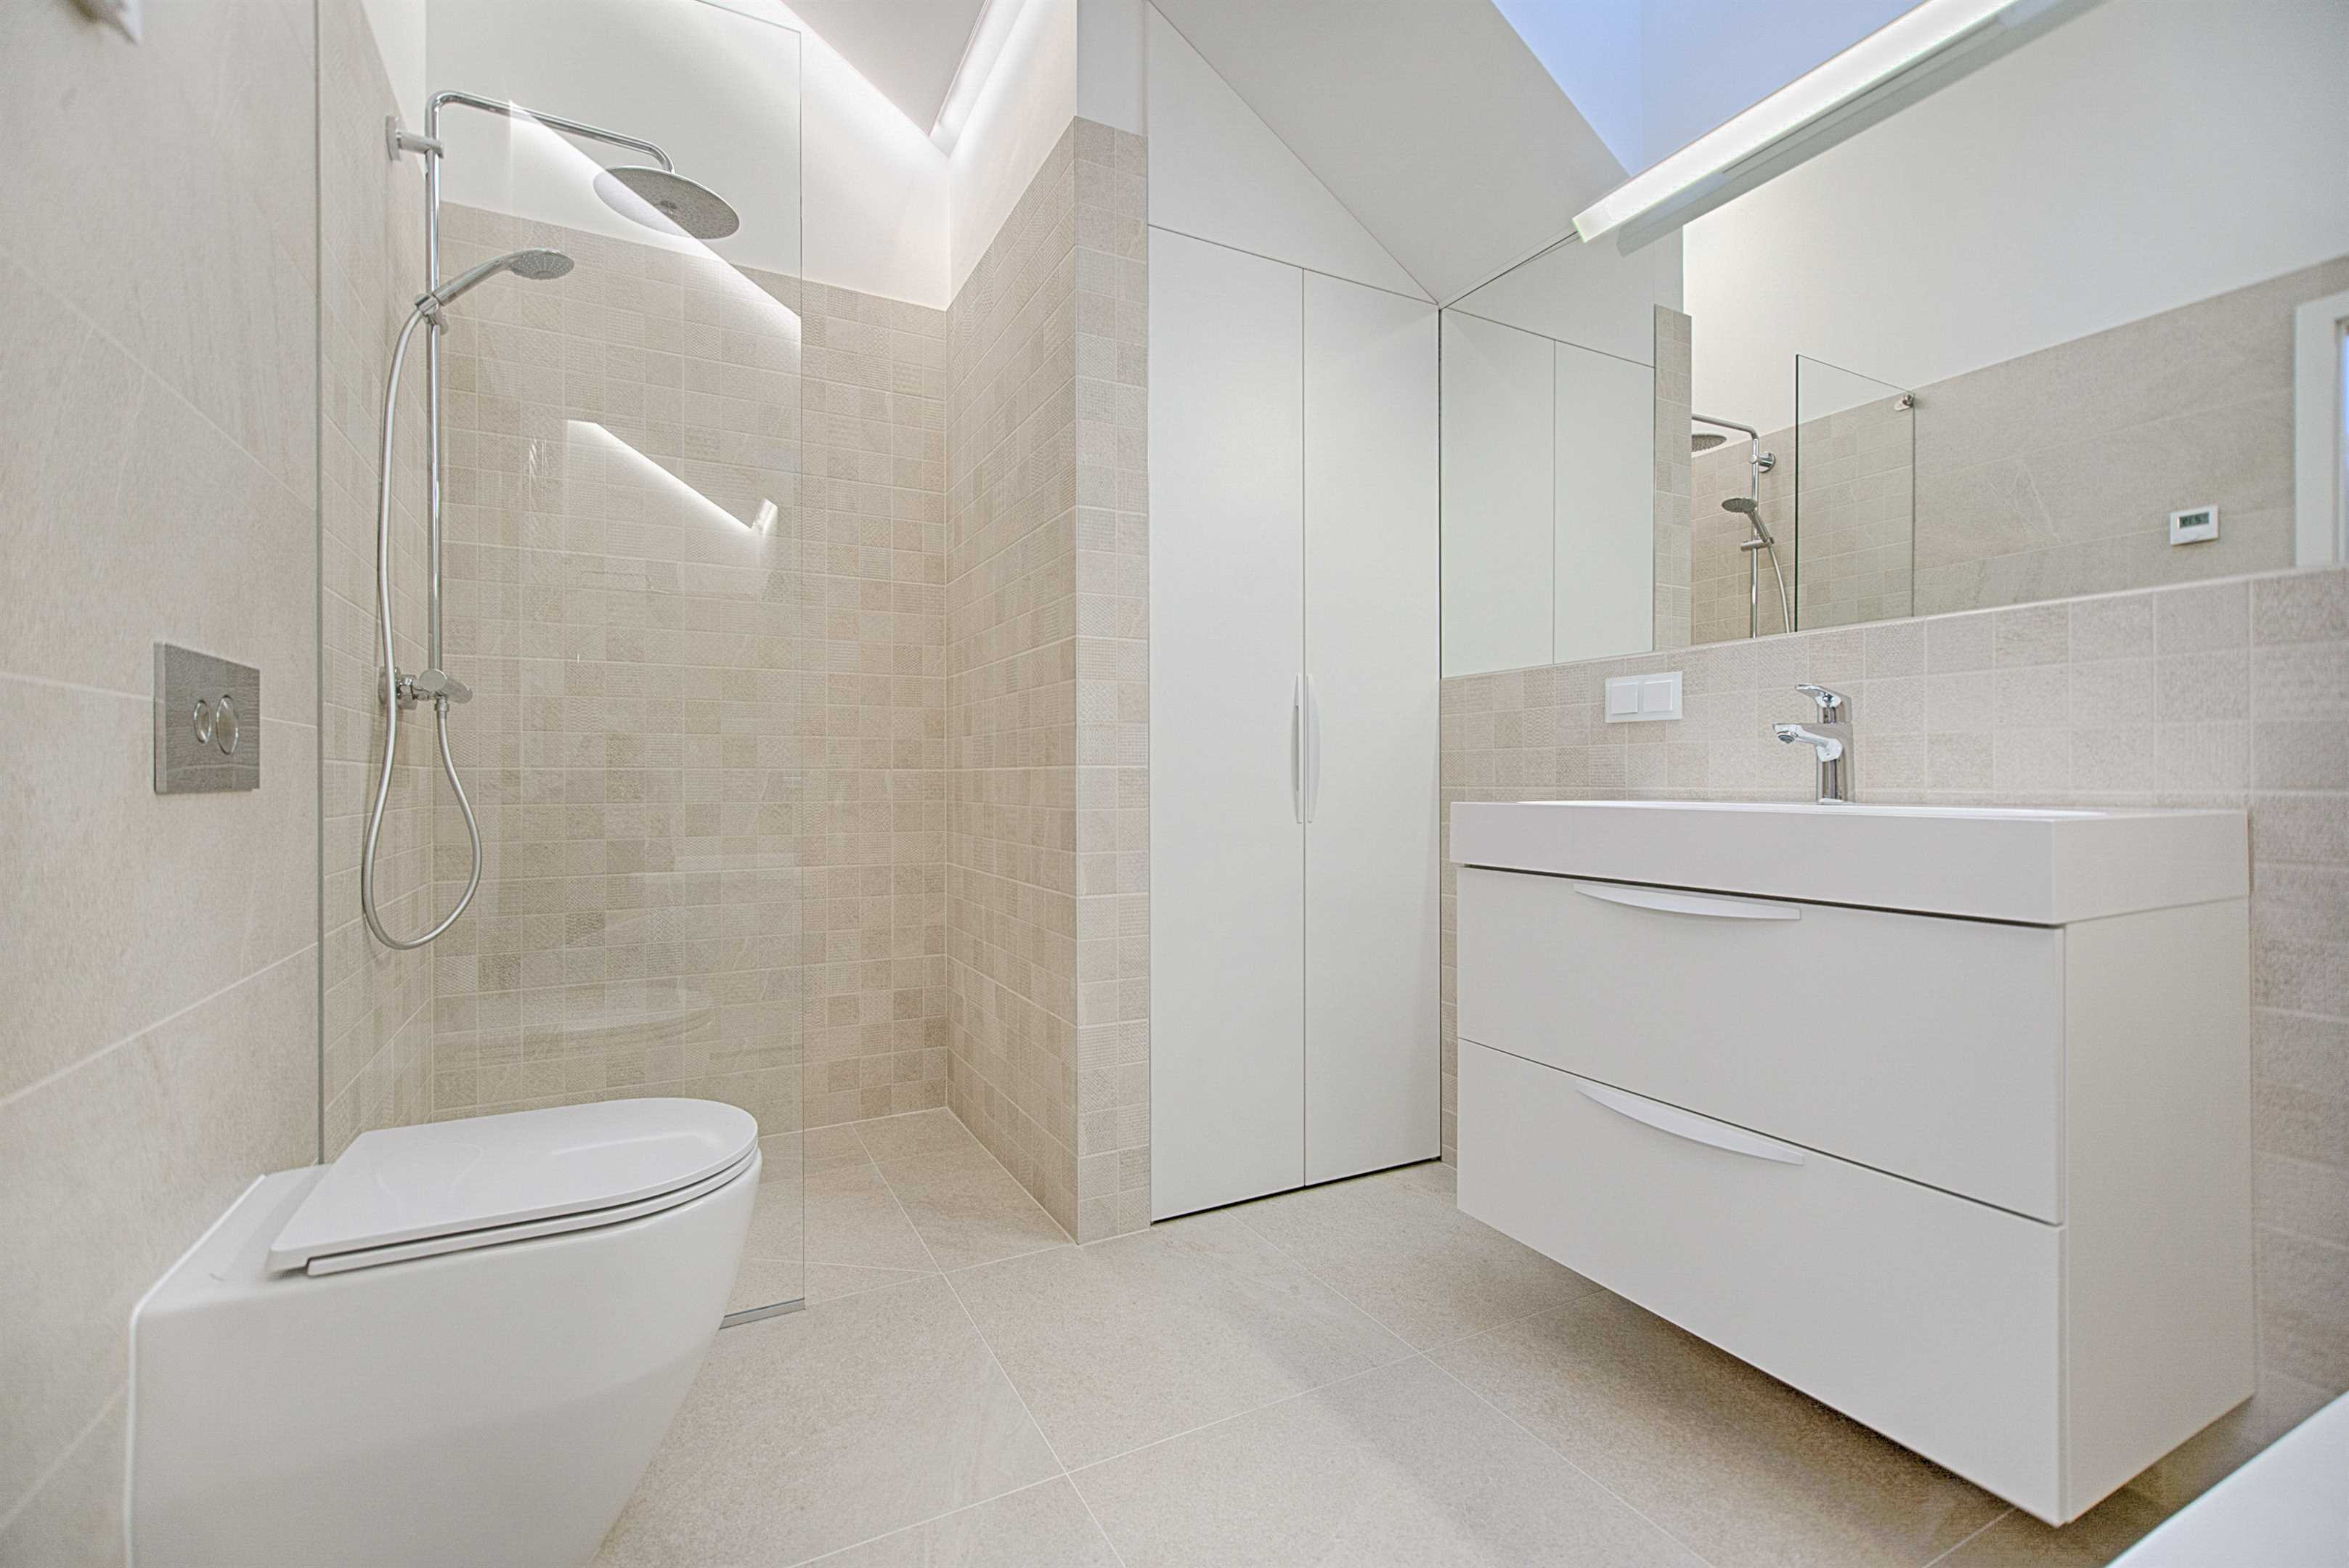 Is Installing a Second Bathroom a Good Investment?